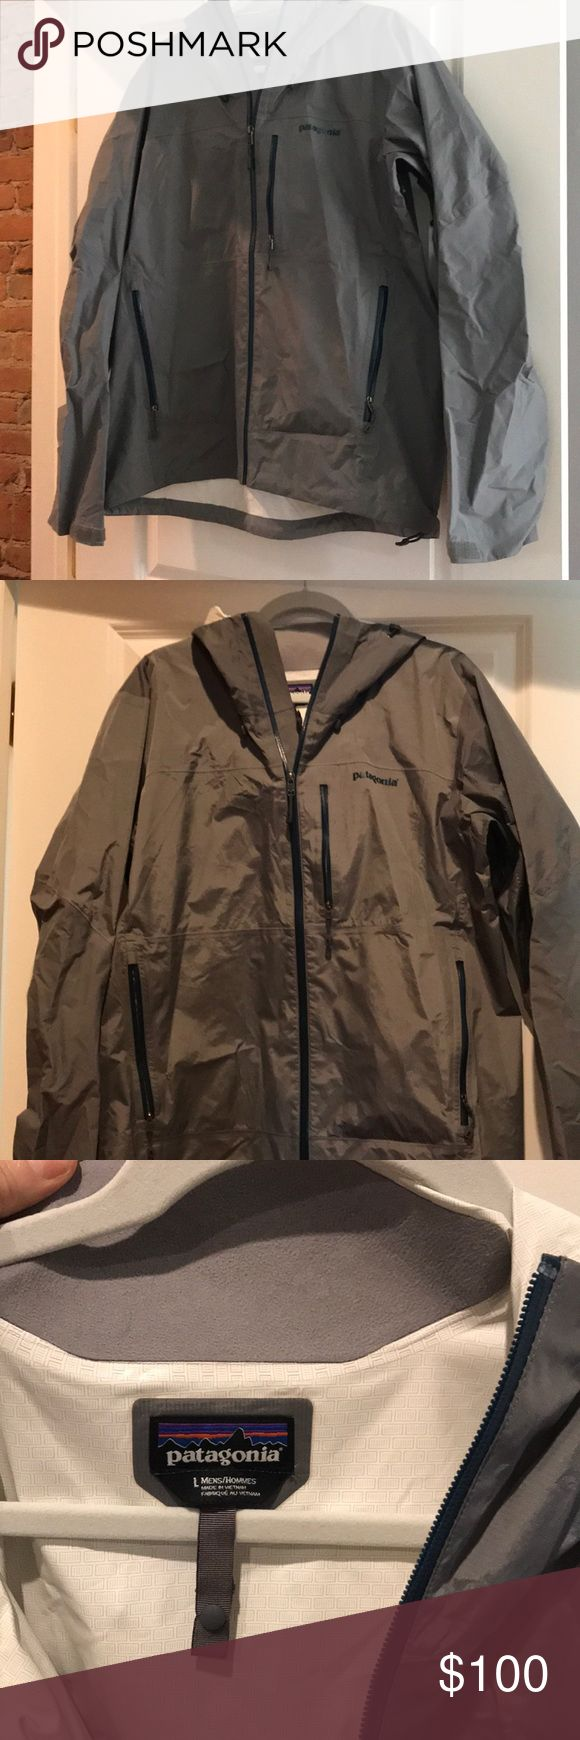 Super light weight Patagonia rain jacket. This is the perfect, packable rain jacket for all of your outdoor adventures! Patagonia Jackets & Coats Raincoats